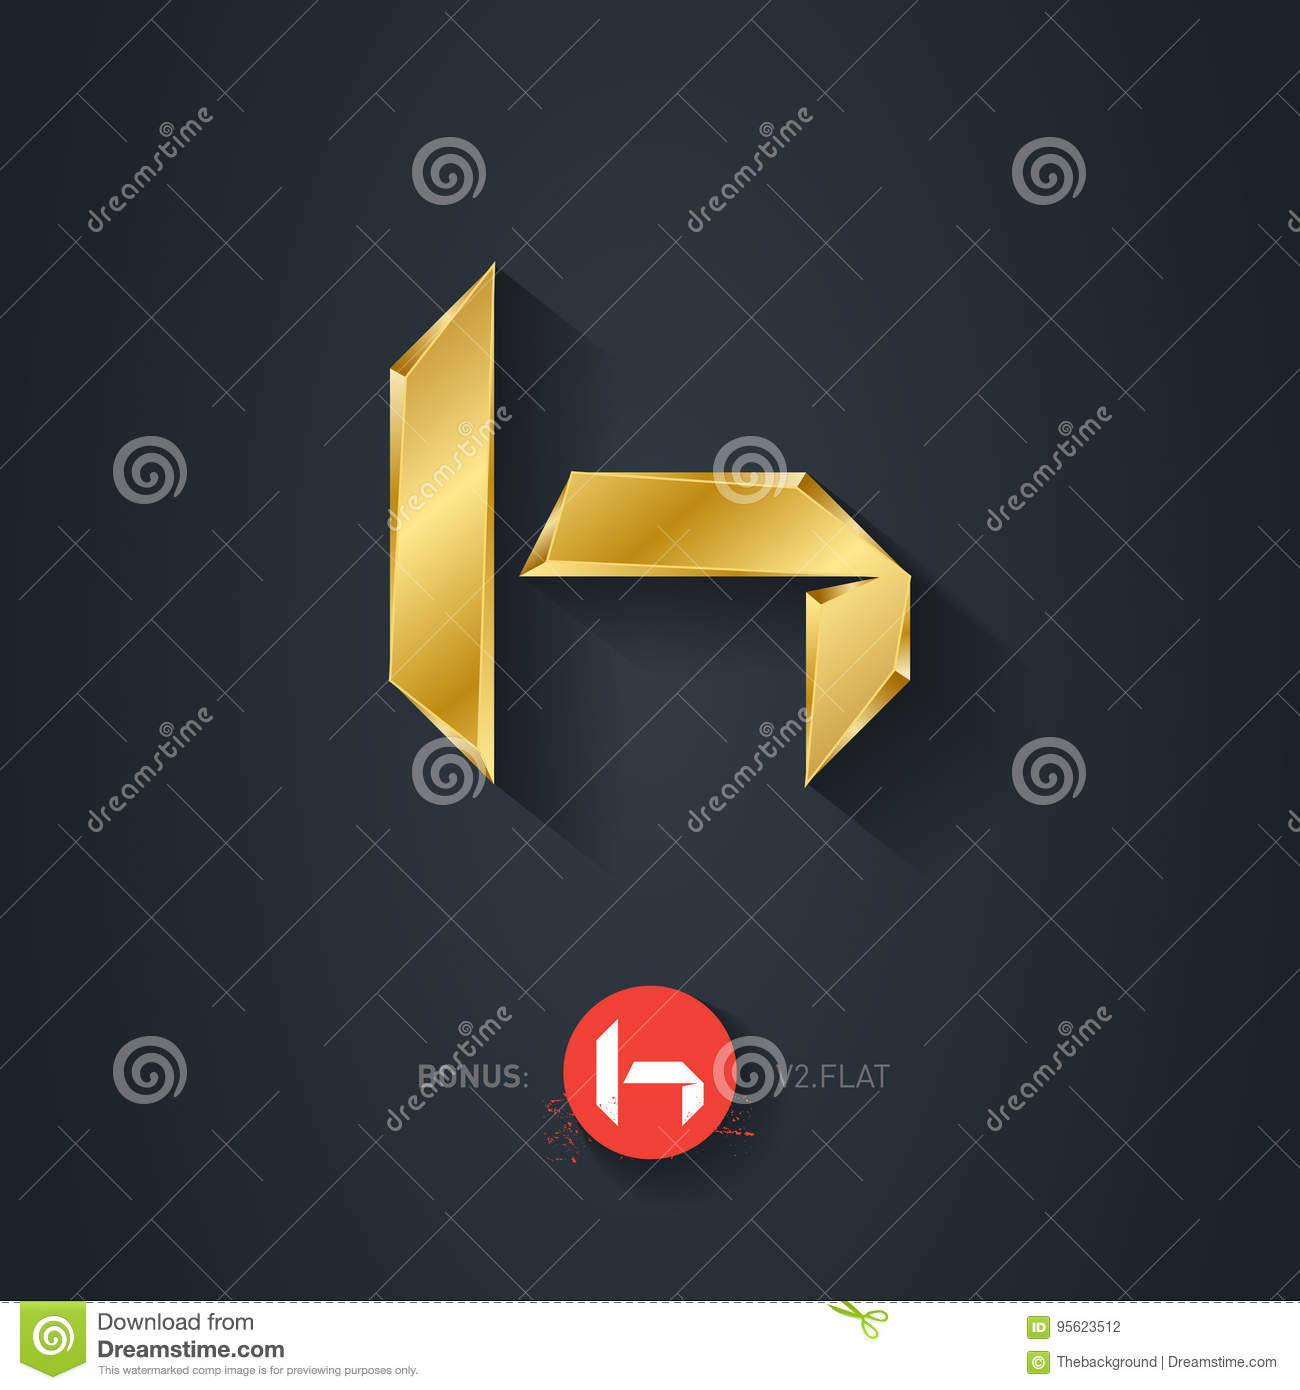 Vector Gold Font Letter H Elegant Template For Company Logo Pseudo Origami Style Including Flat Version 3d Metallic Design Element Or Icon